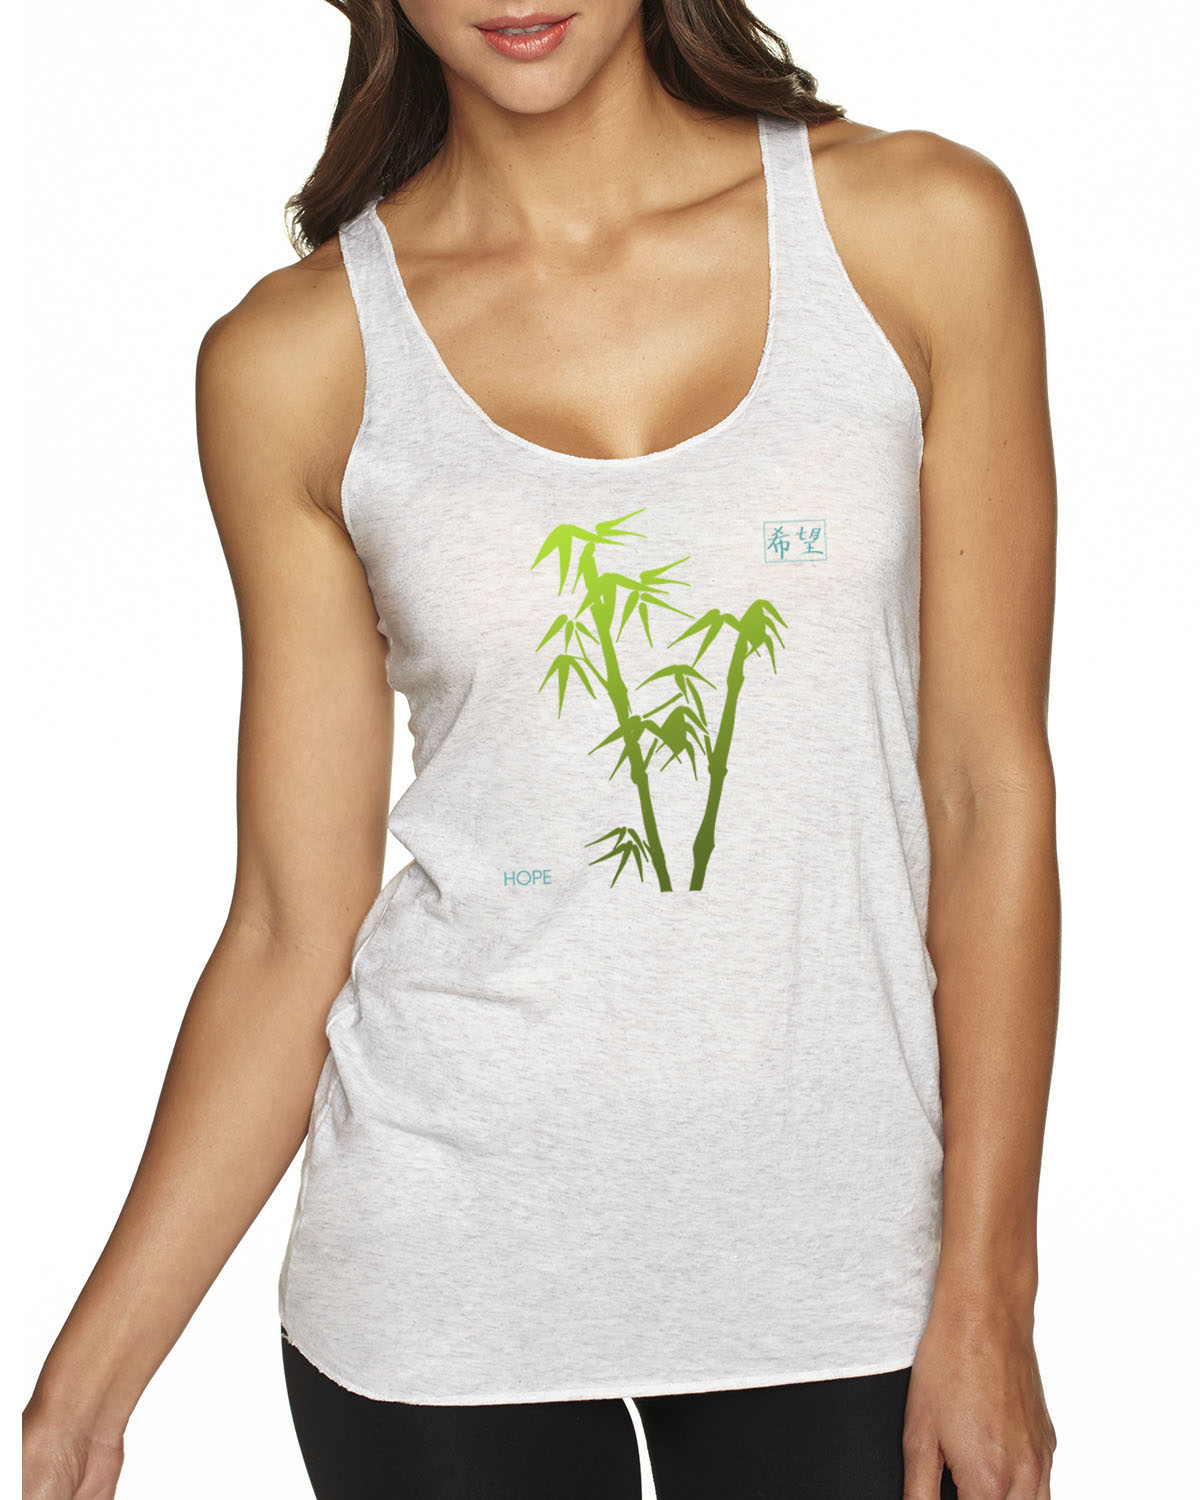 Racer-back tri-blend tank top (heather White)